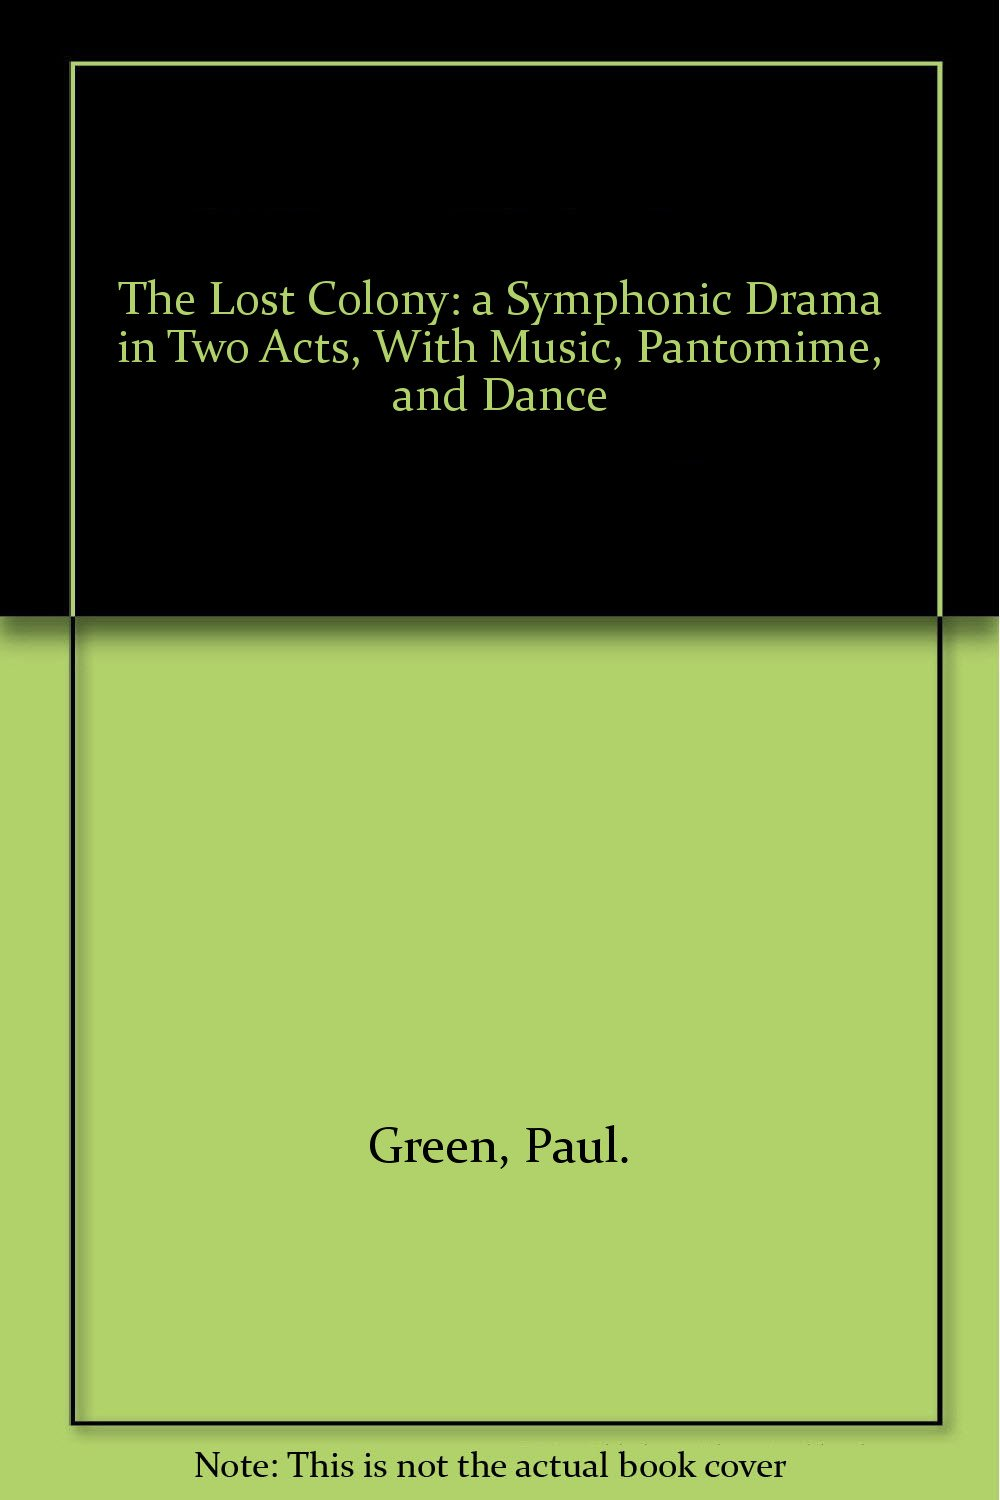 The lost colony,: A symphonic drama in two acts, with music, pantomime, and dance,